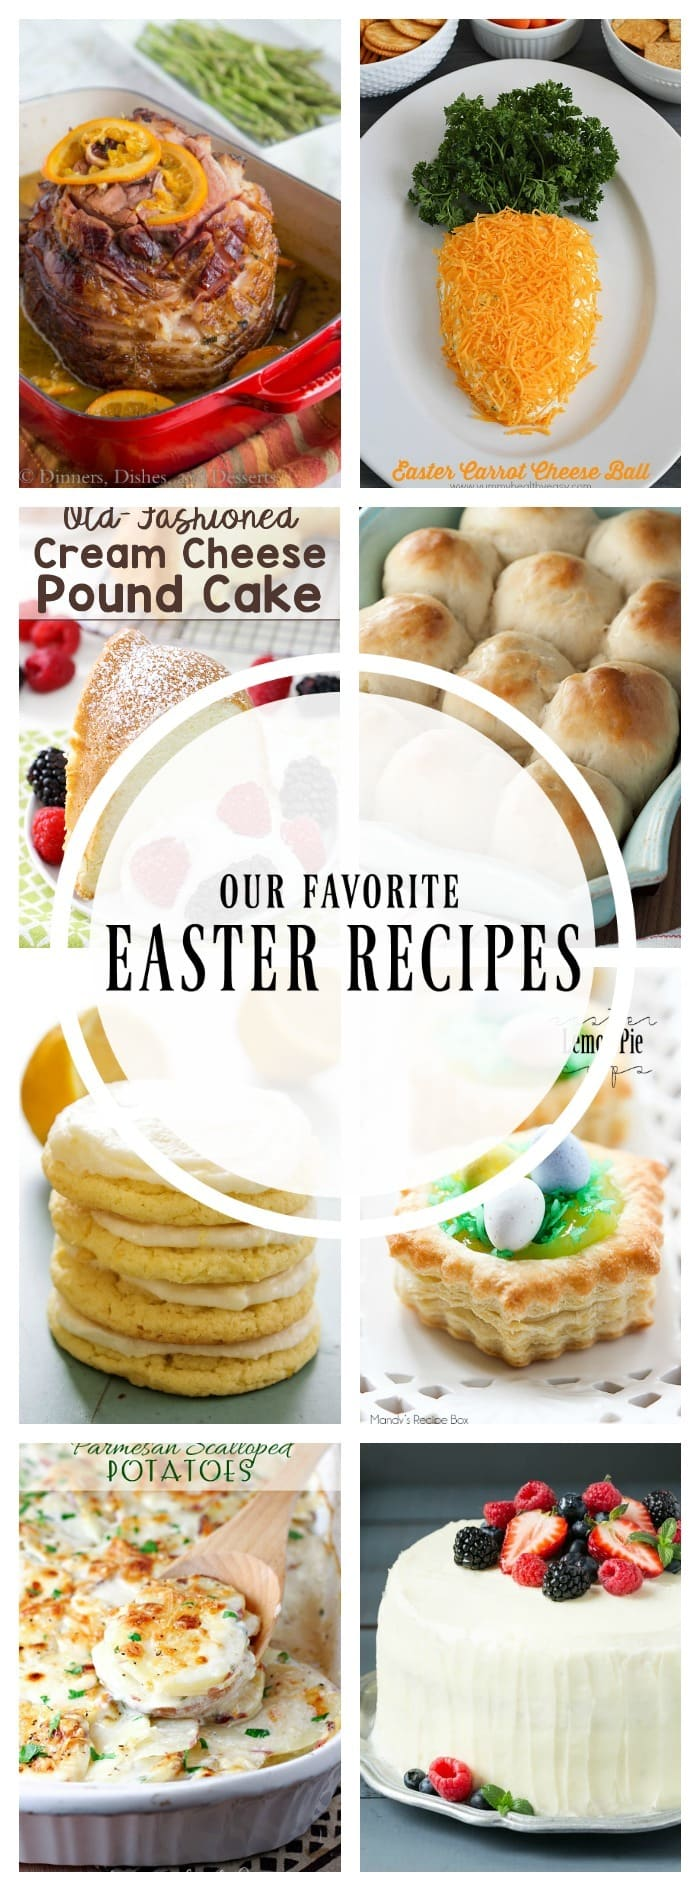 Best Easter Menu Recipes That Skinny Chick Can Bake